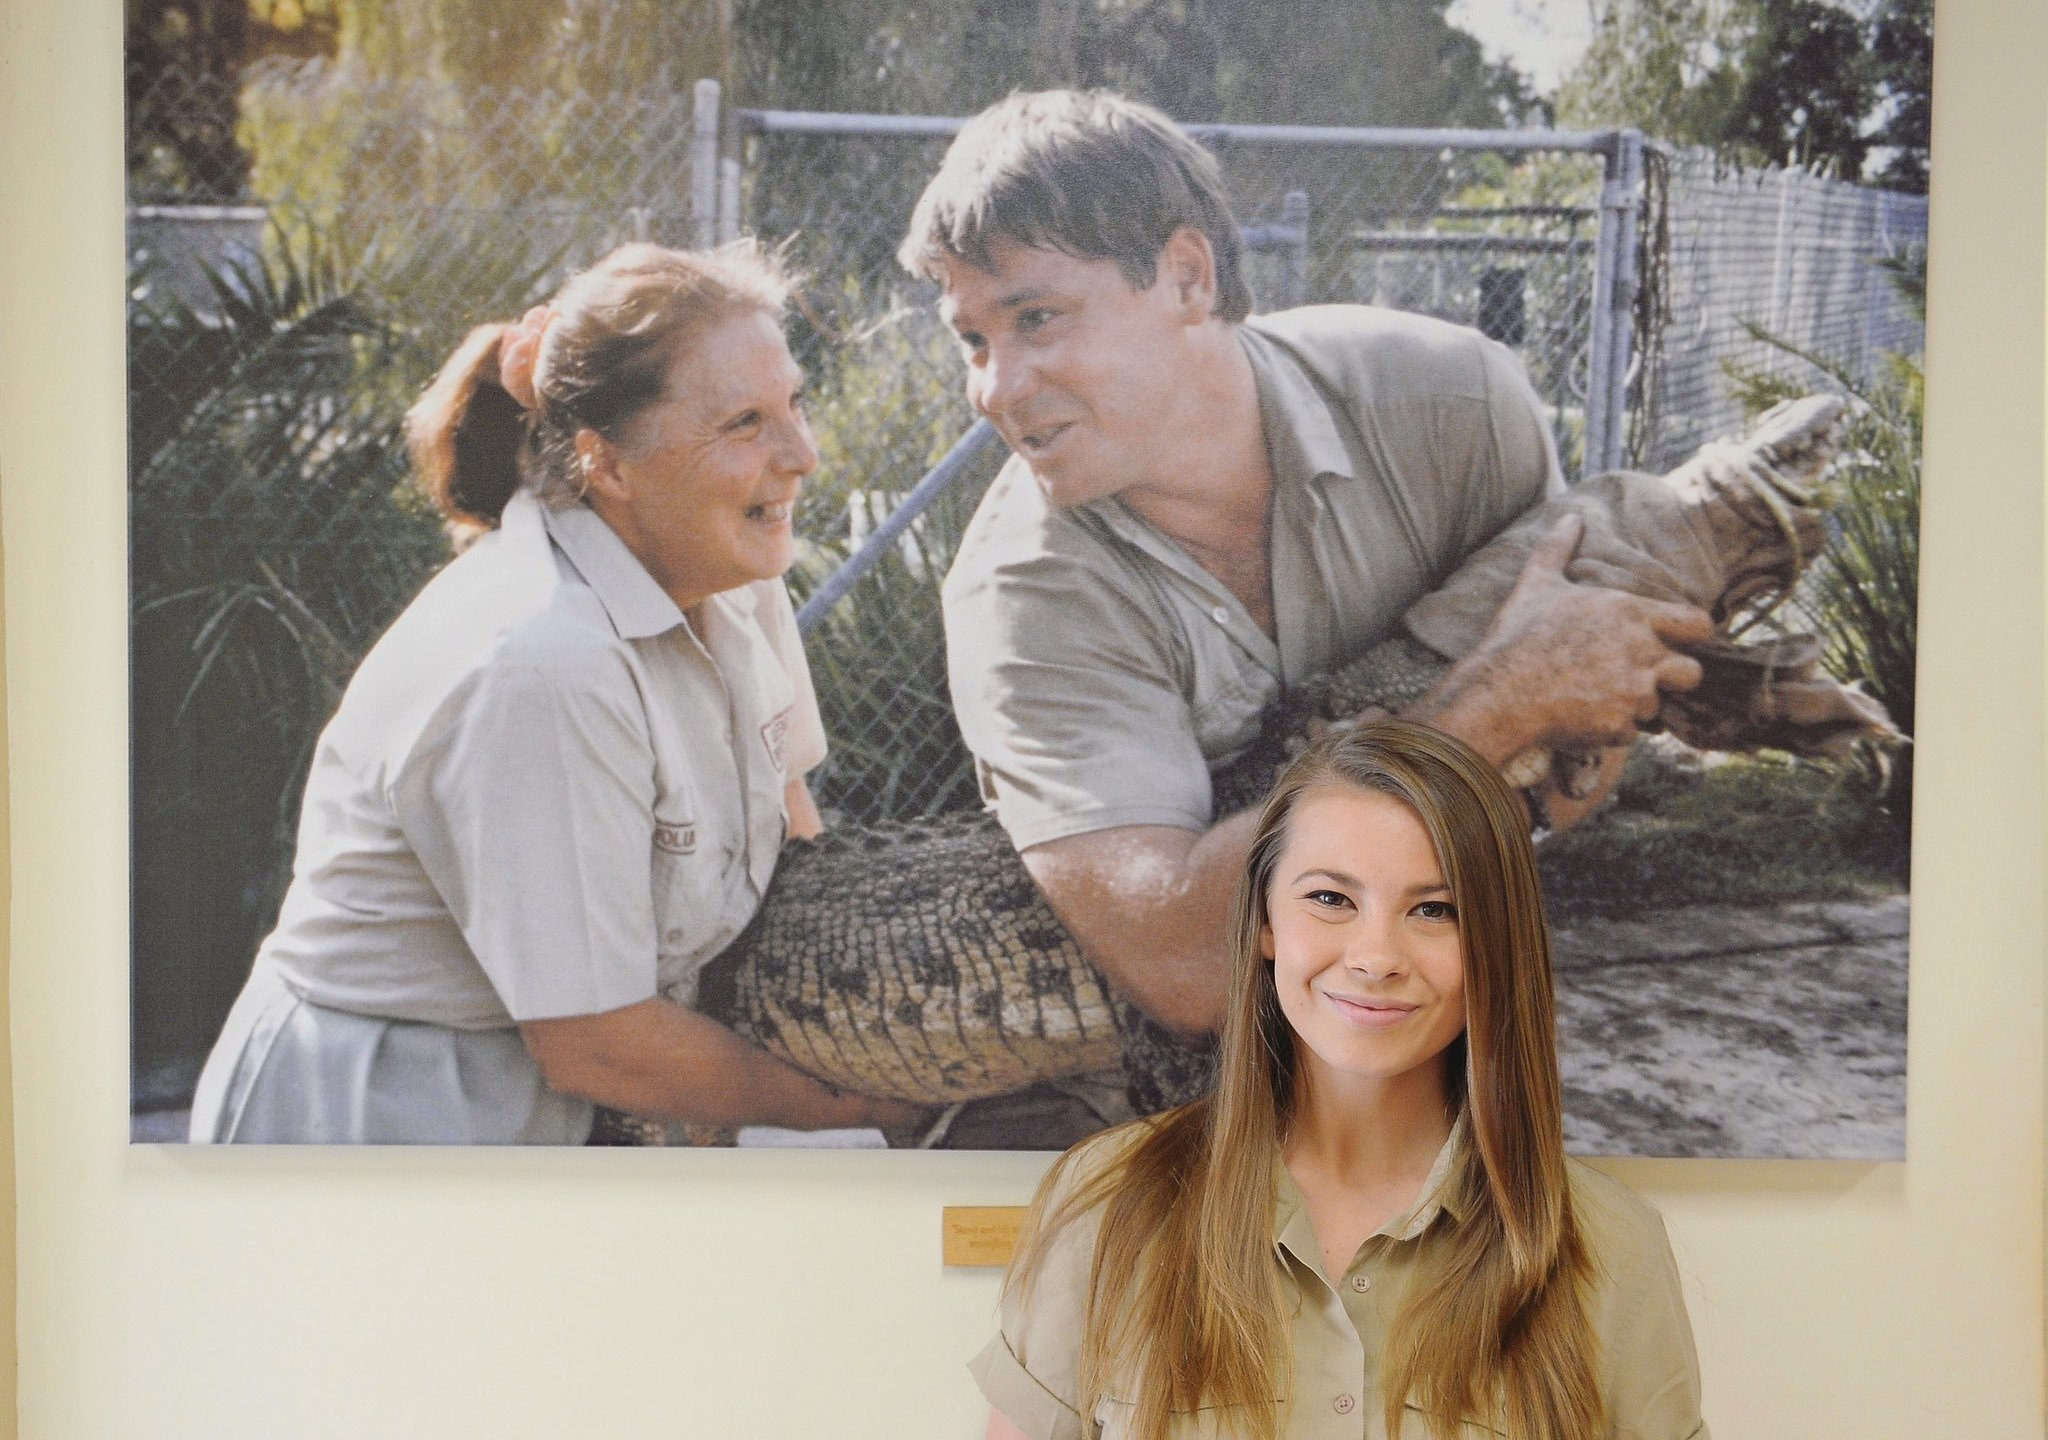 Bindi Irwin appears in a photo she posted on Twitter on Jan. 2, 2020 describing the Australia Zoo's efforts in helping the wildlife affected by wildfires.